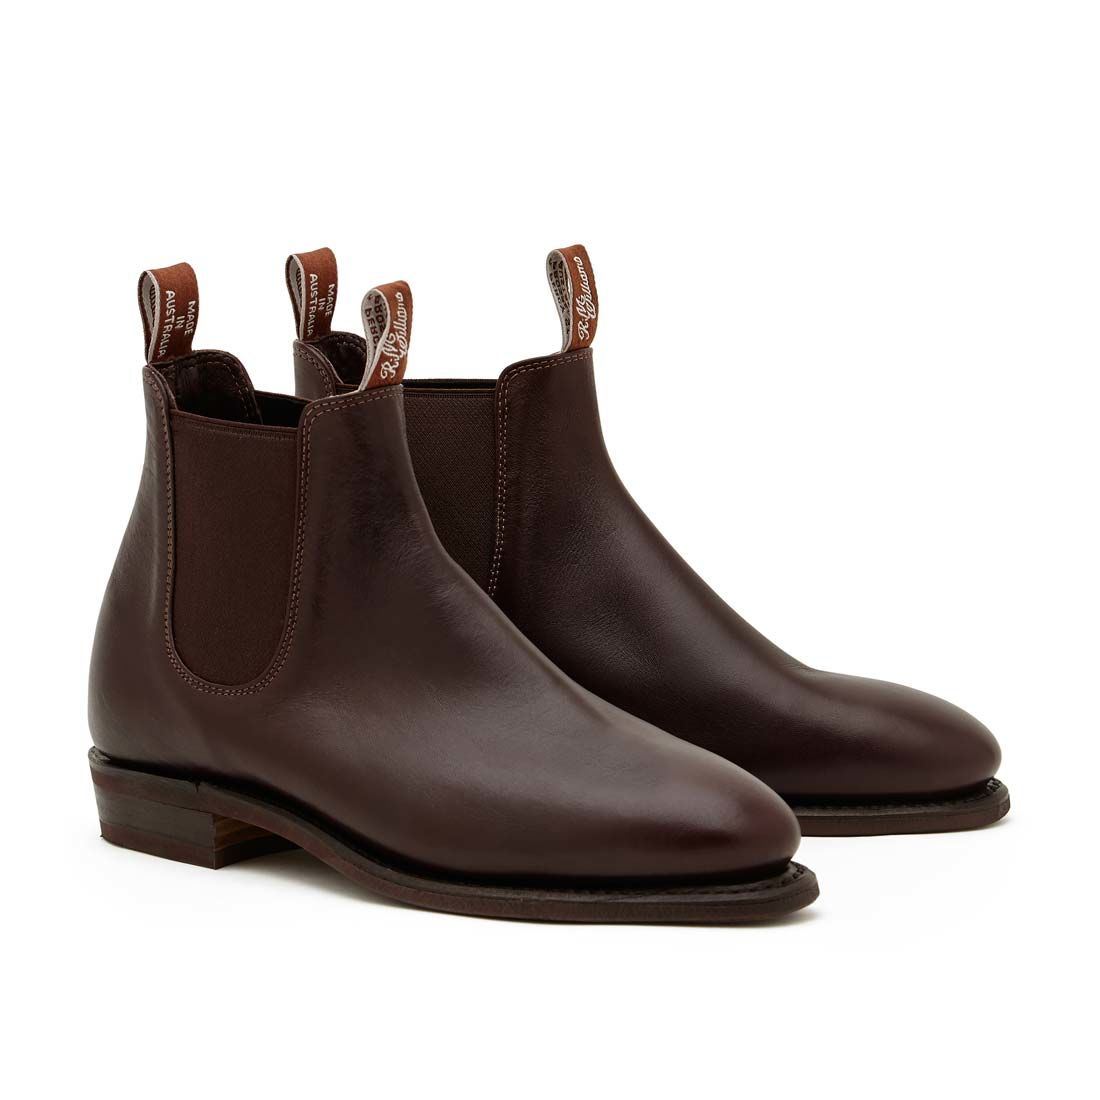 Womens Classic Yearling Adelaide Boots Chestnut